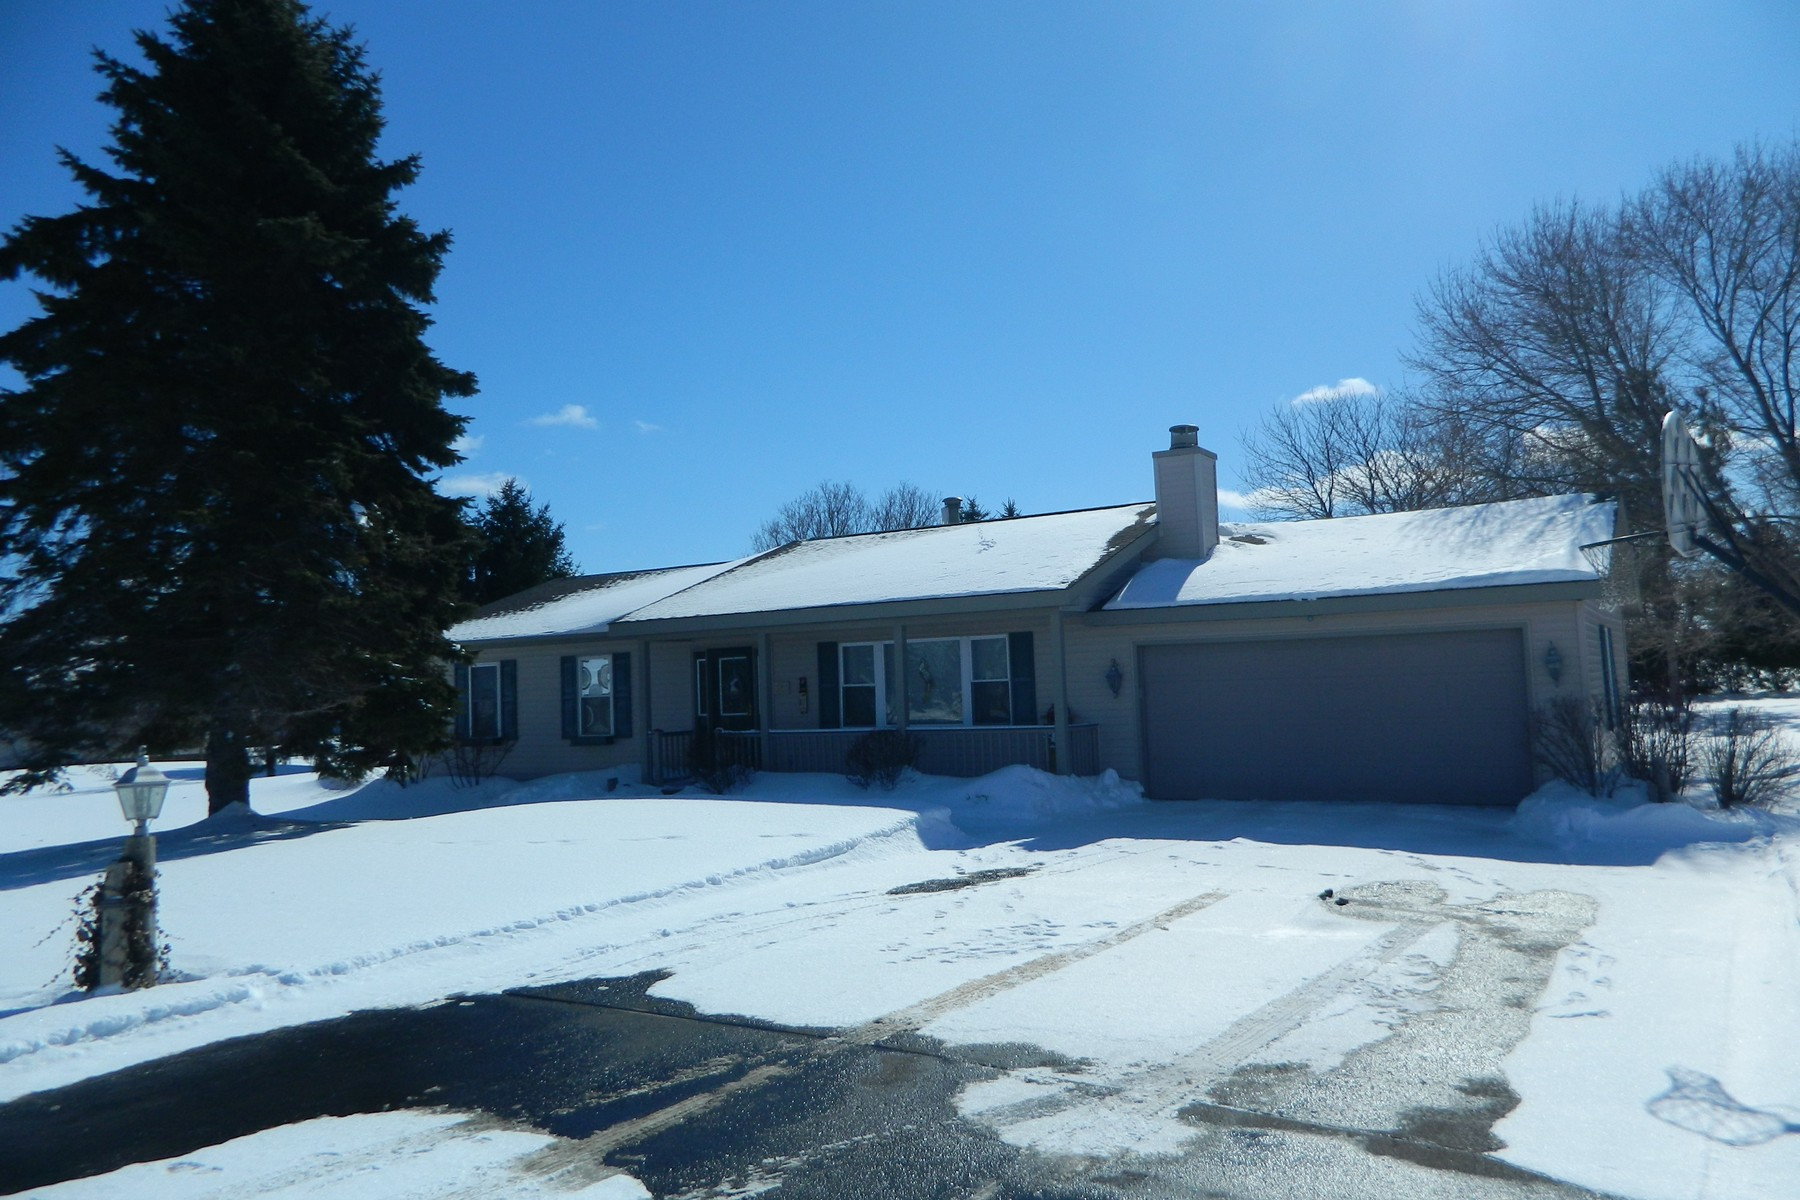 Single Family Home for Sale at Family Home 3189 Mayberry Hill Petoskey, Michigan 49740 United States